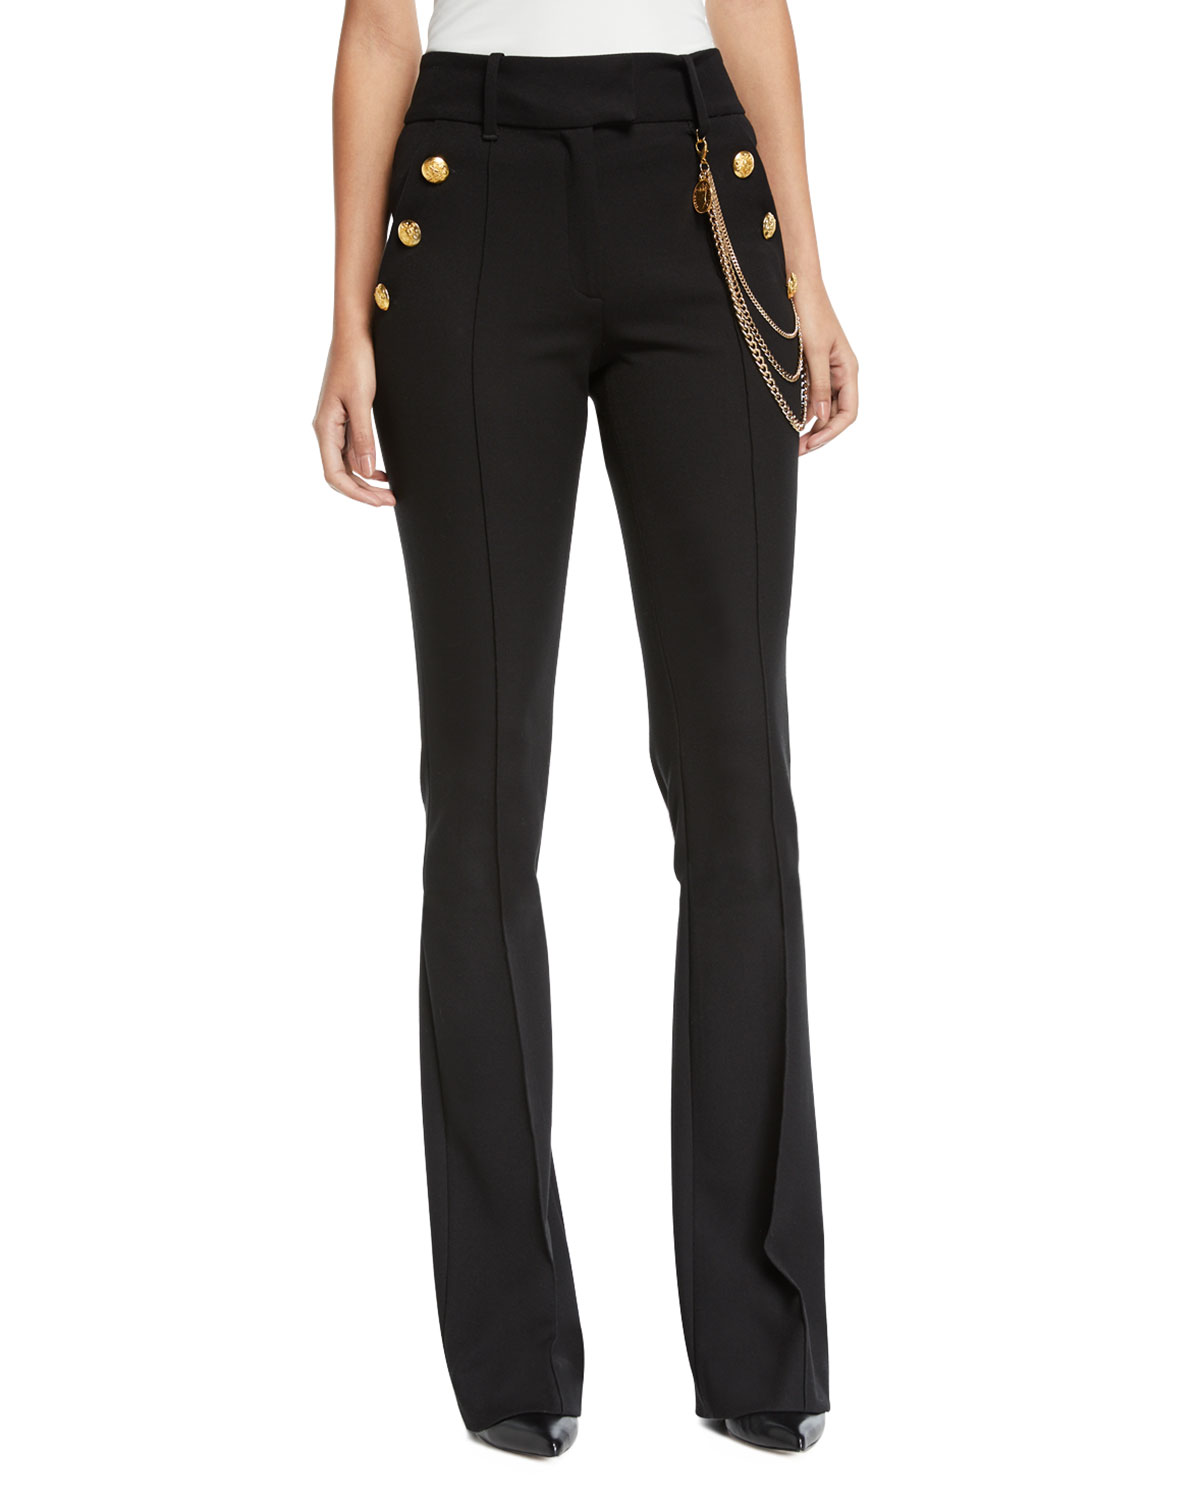 Veronica Beard Pants ALAIR HIGH-RISE BOOT-CUT TROUSERS WITH CHAIN DETAILS